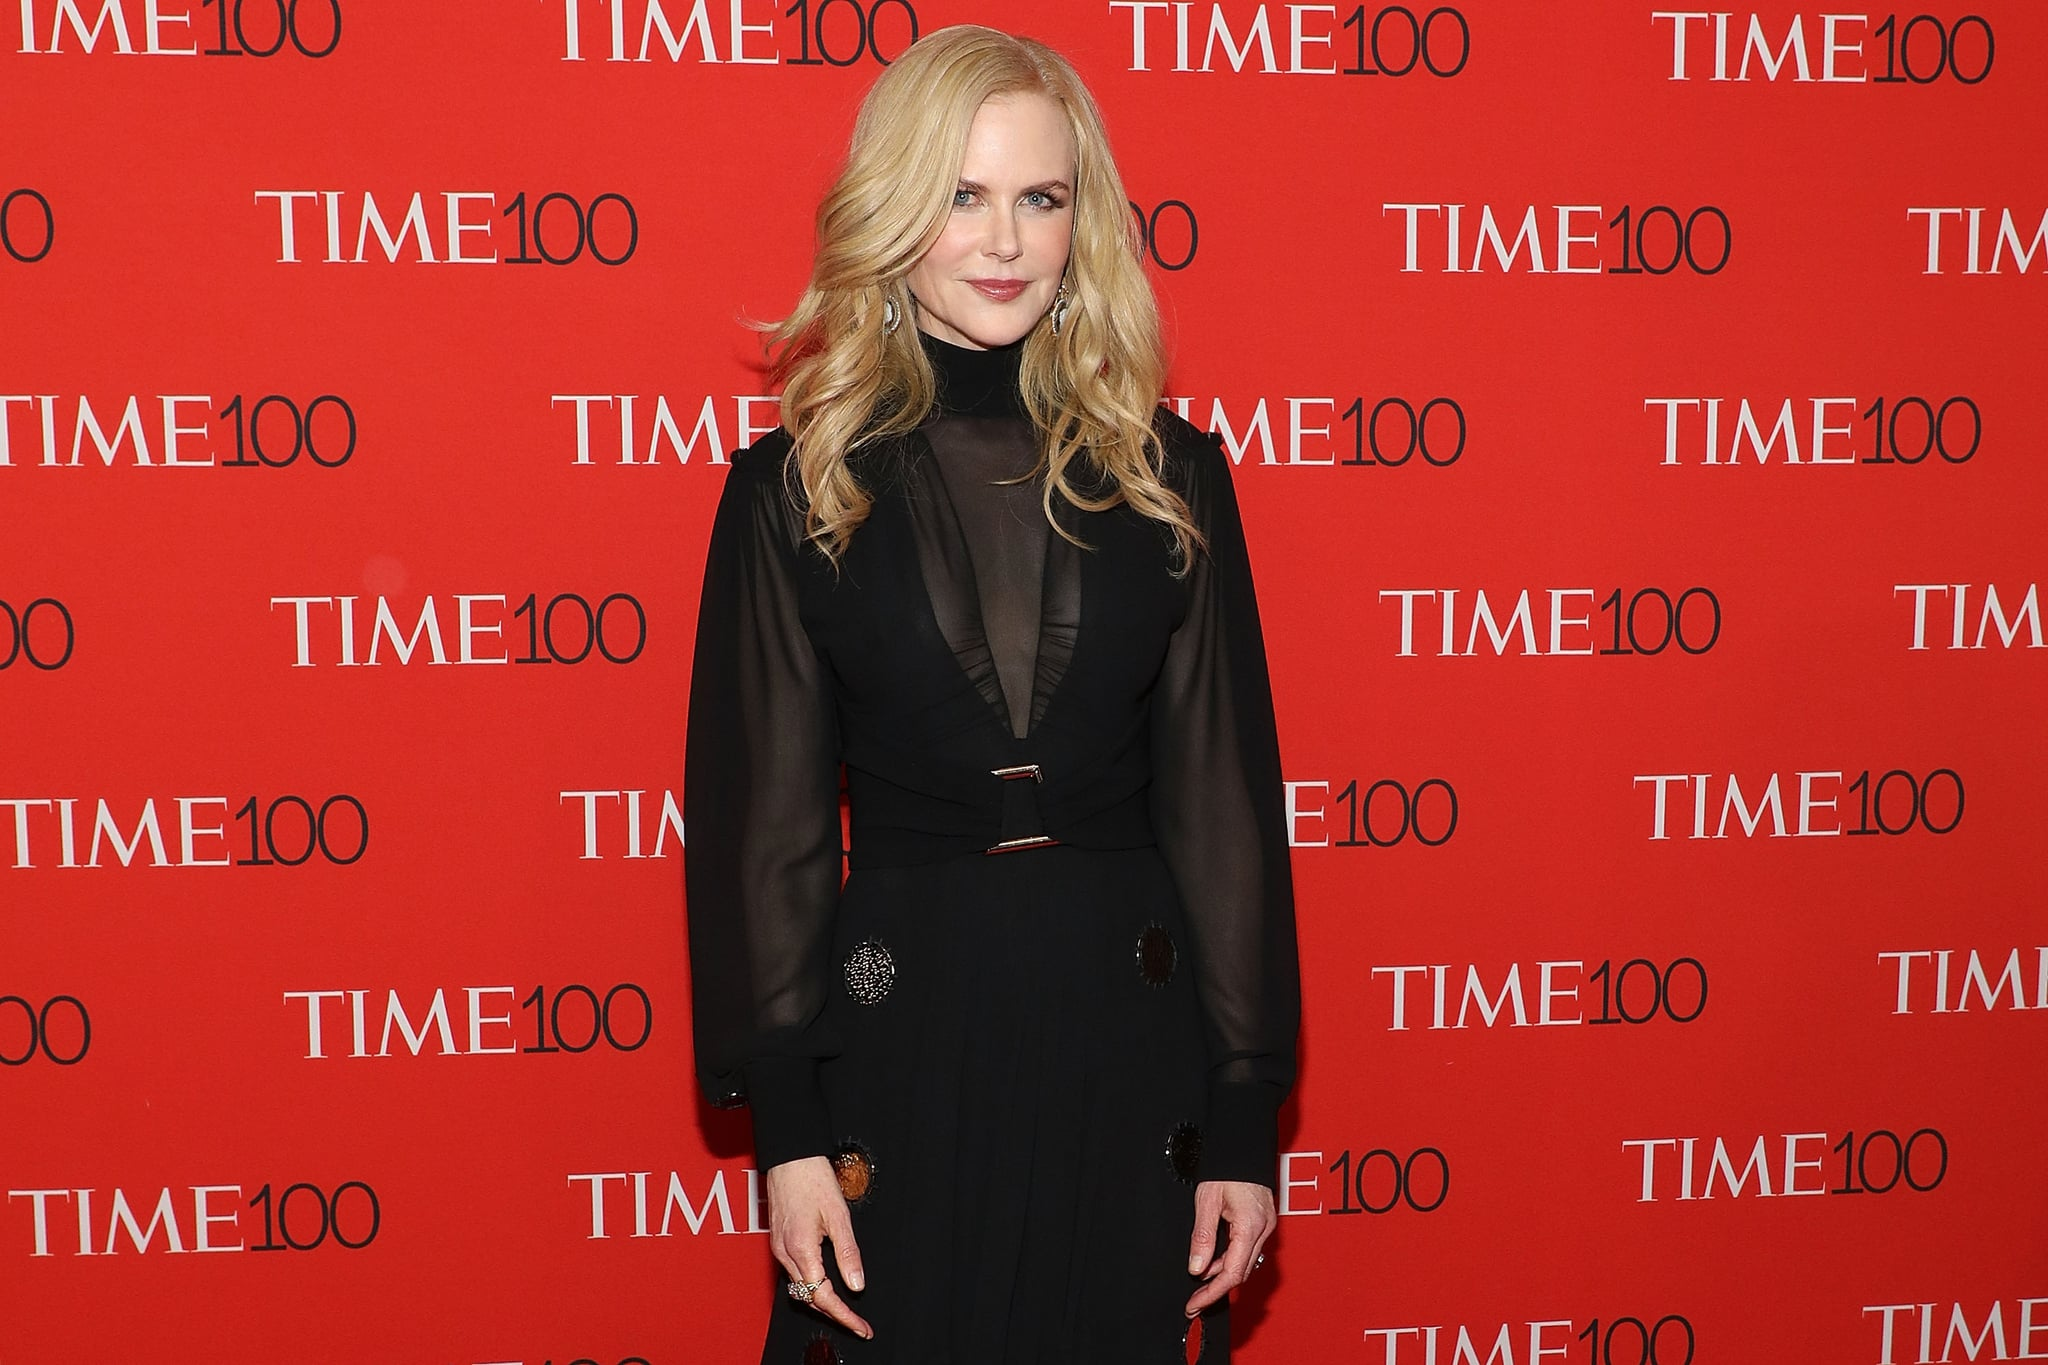 NEW YORK, NY - APRIL 24:  Nicole Kidman attends the 2018 Time 100 Gala at Frederick P. Rose Hall, Jazz at Lincoln Center on April 24, 2018 in New York City.  (Photo by Taylor Hill/FilmMagic)